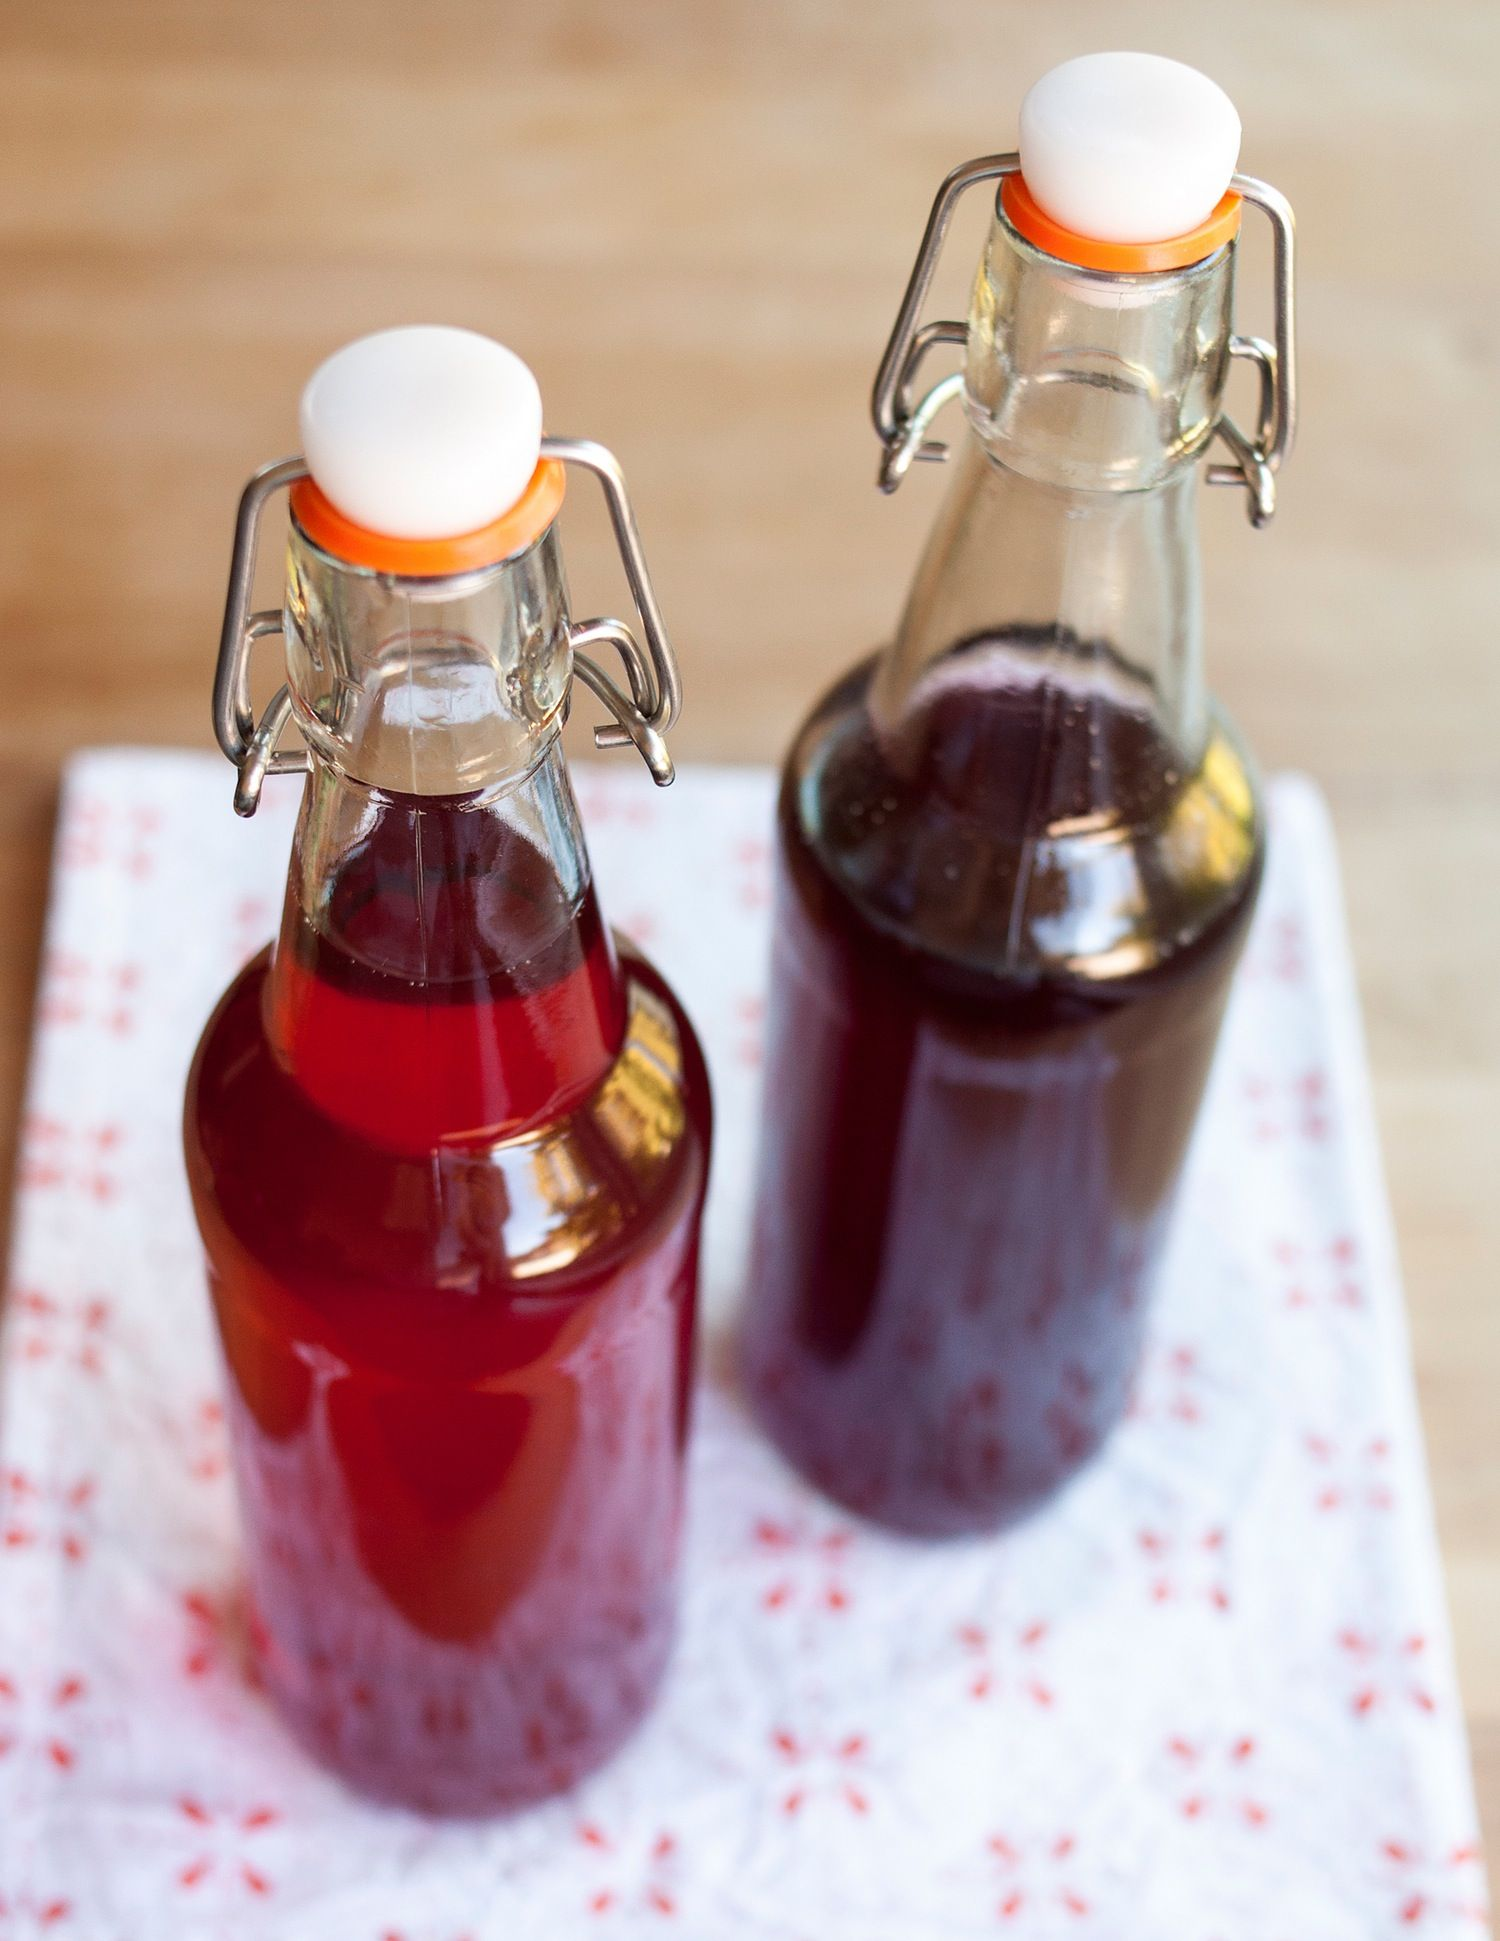 It's no pretty jar of jam or row of canned tomatoes, I know, but I suspect that making your own fruit-flavored vodkas might just be the most fun way to preserve the season! This is also perfect for when you're not in the mood for a big preserving project, but want a quick way to make sure that handful of juicy berries, plump purple figs, or last peaches doesn't go to waste. Because a bottle of jewel-colored, summer fruit-infused vodka will never go to waste. Trust me on this.